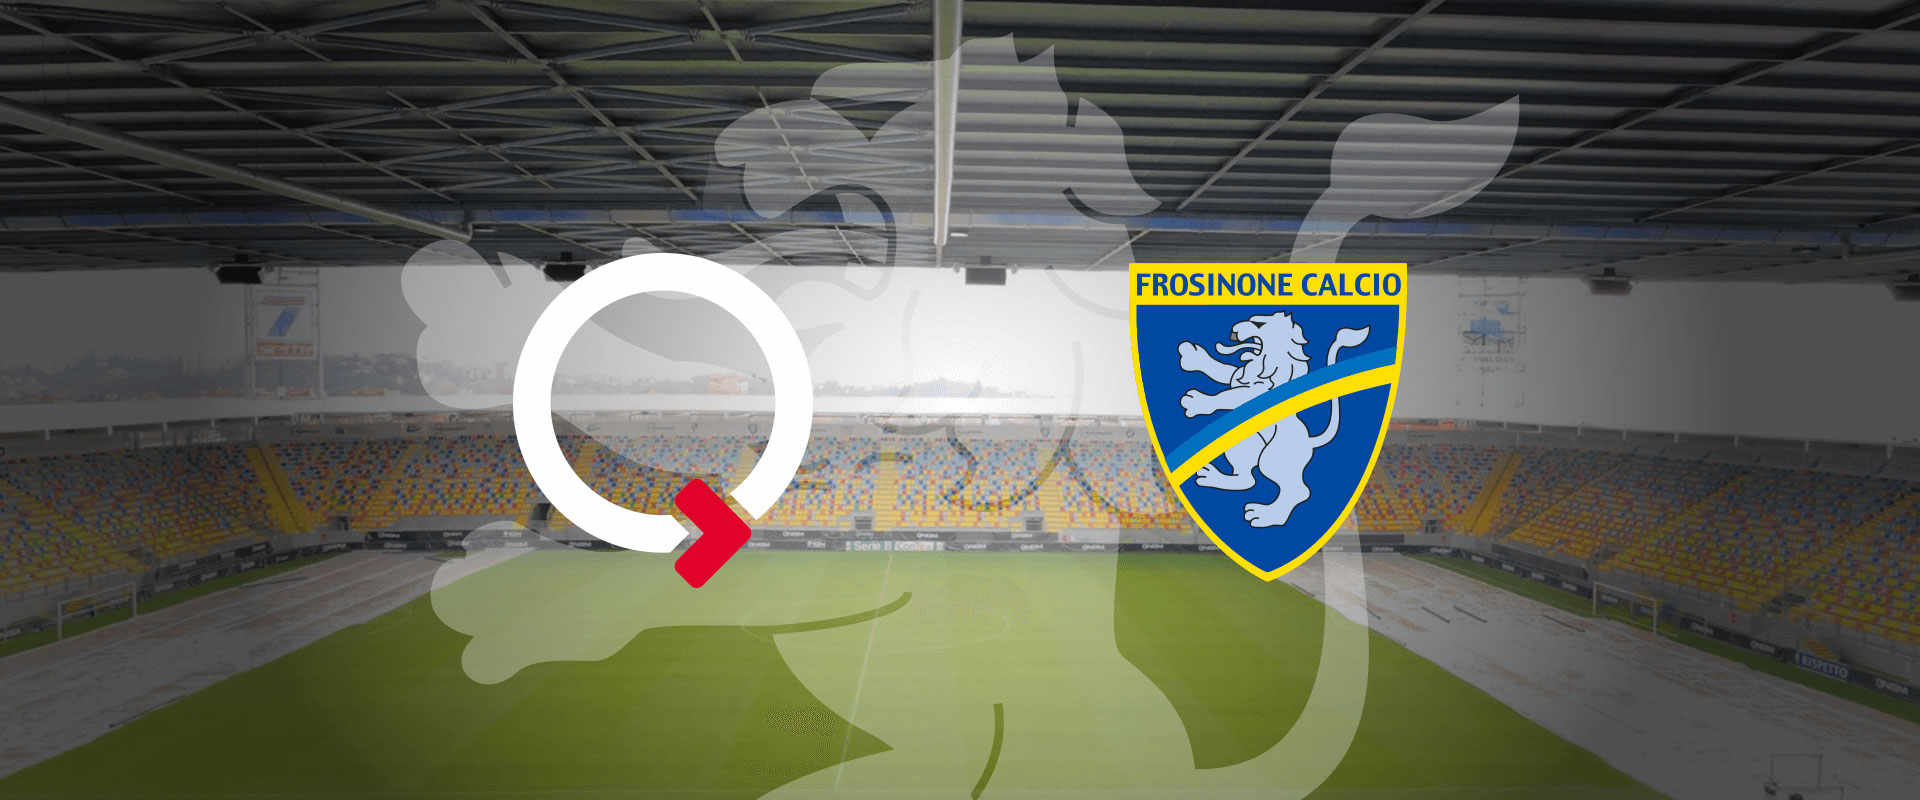 frosinone iquii official digital partner